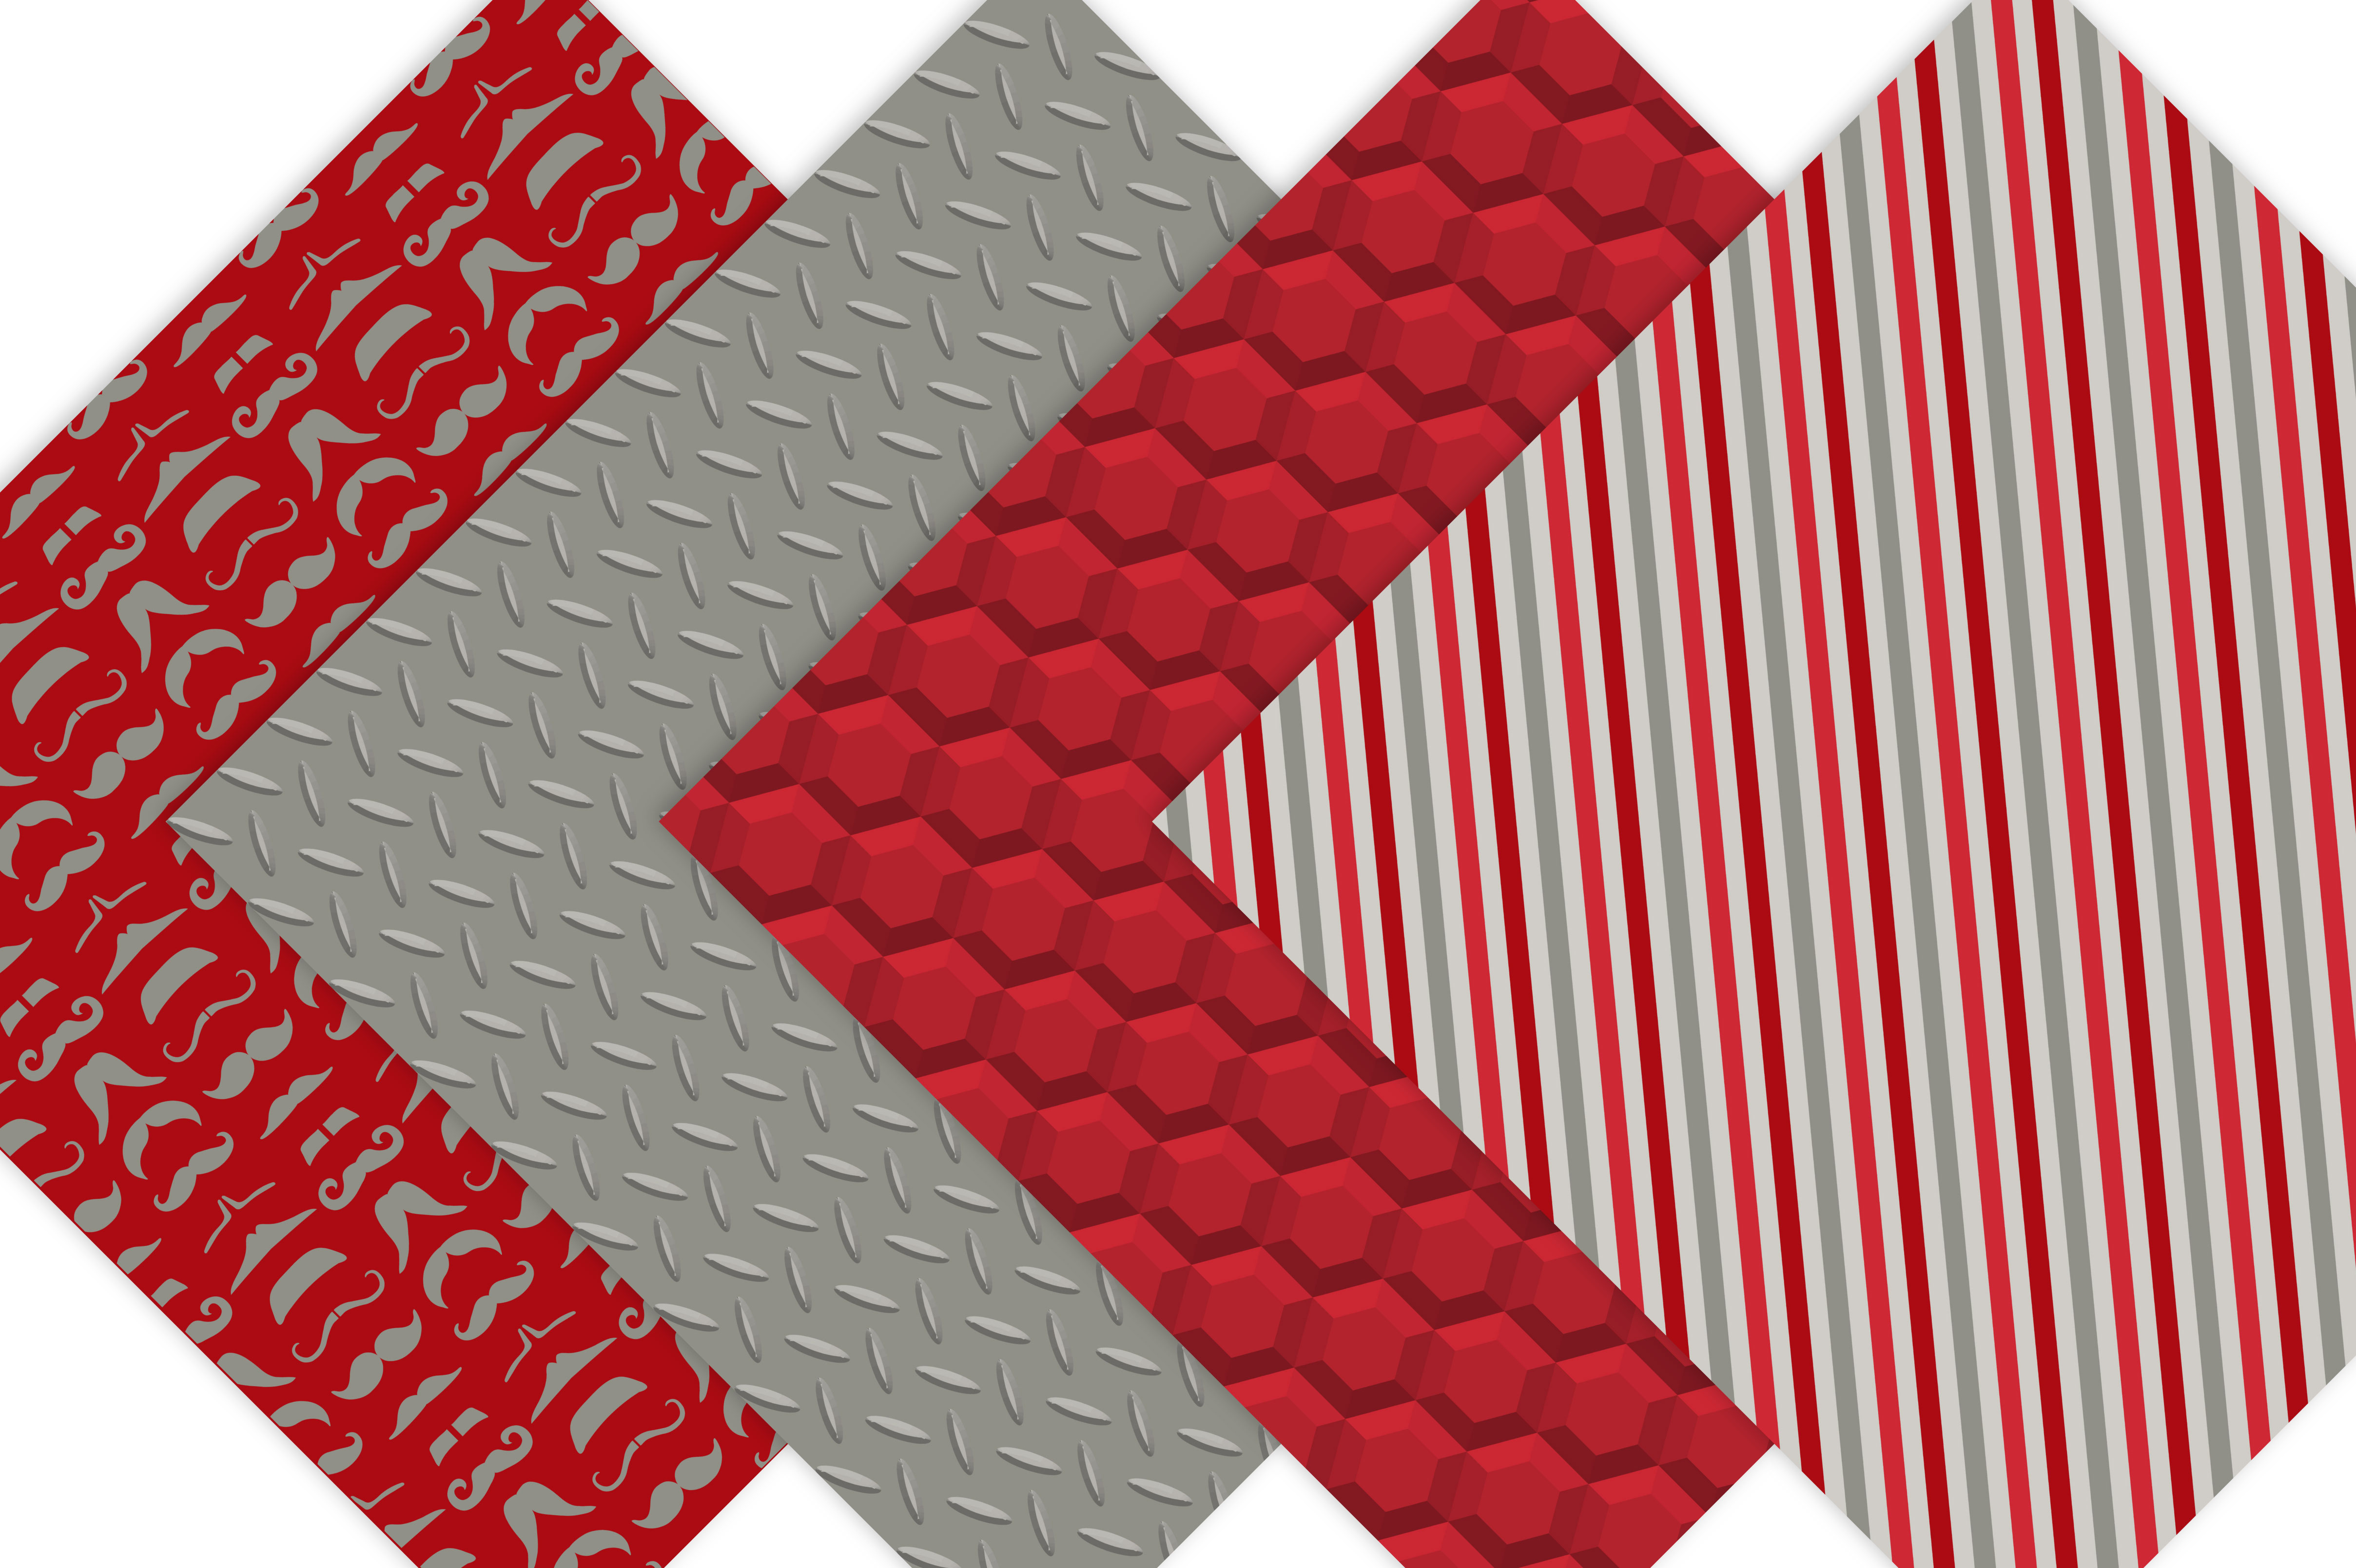 Father's Day Digital Paper Patterns - Red example image 3